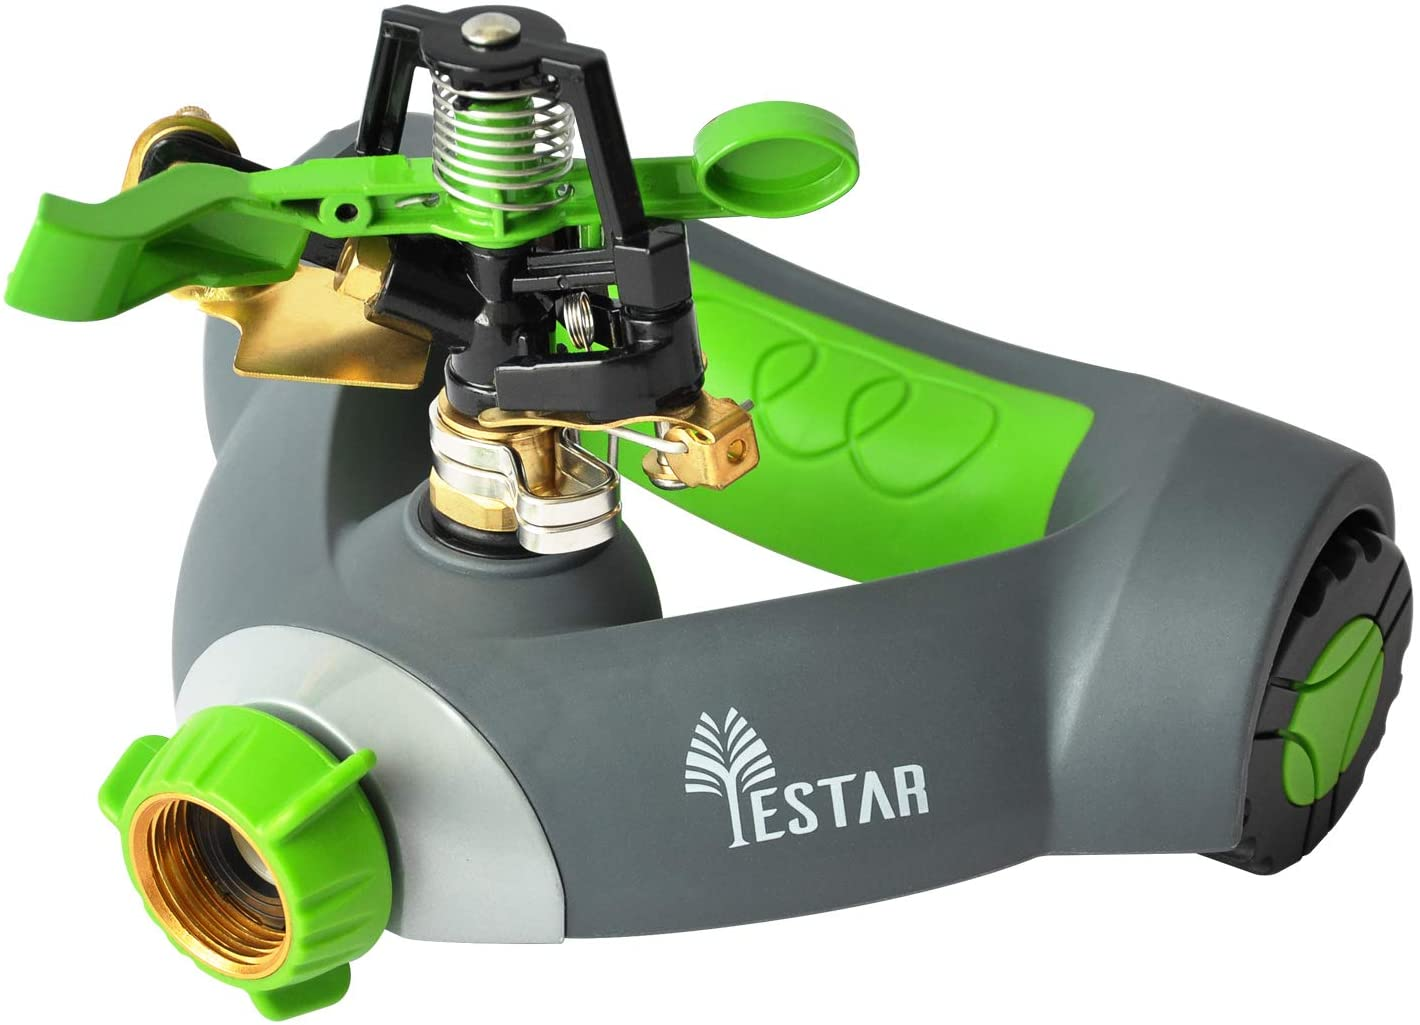 YESTAR Garden Lawn Impulse Sprinkler, Adjustable 360° Rotating Portable Yard Sprinkler with Metal Head & Wheeled Base, Water Up to 4,800 Sq. Ft. Coverage